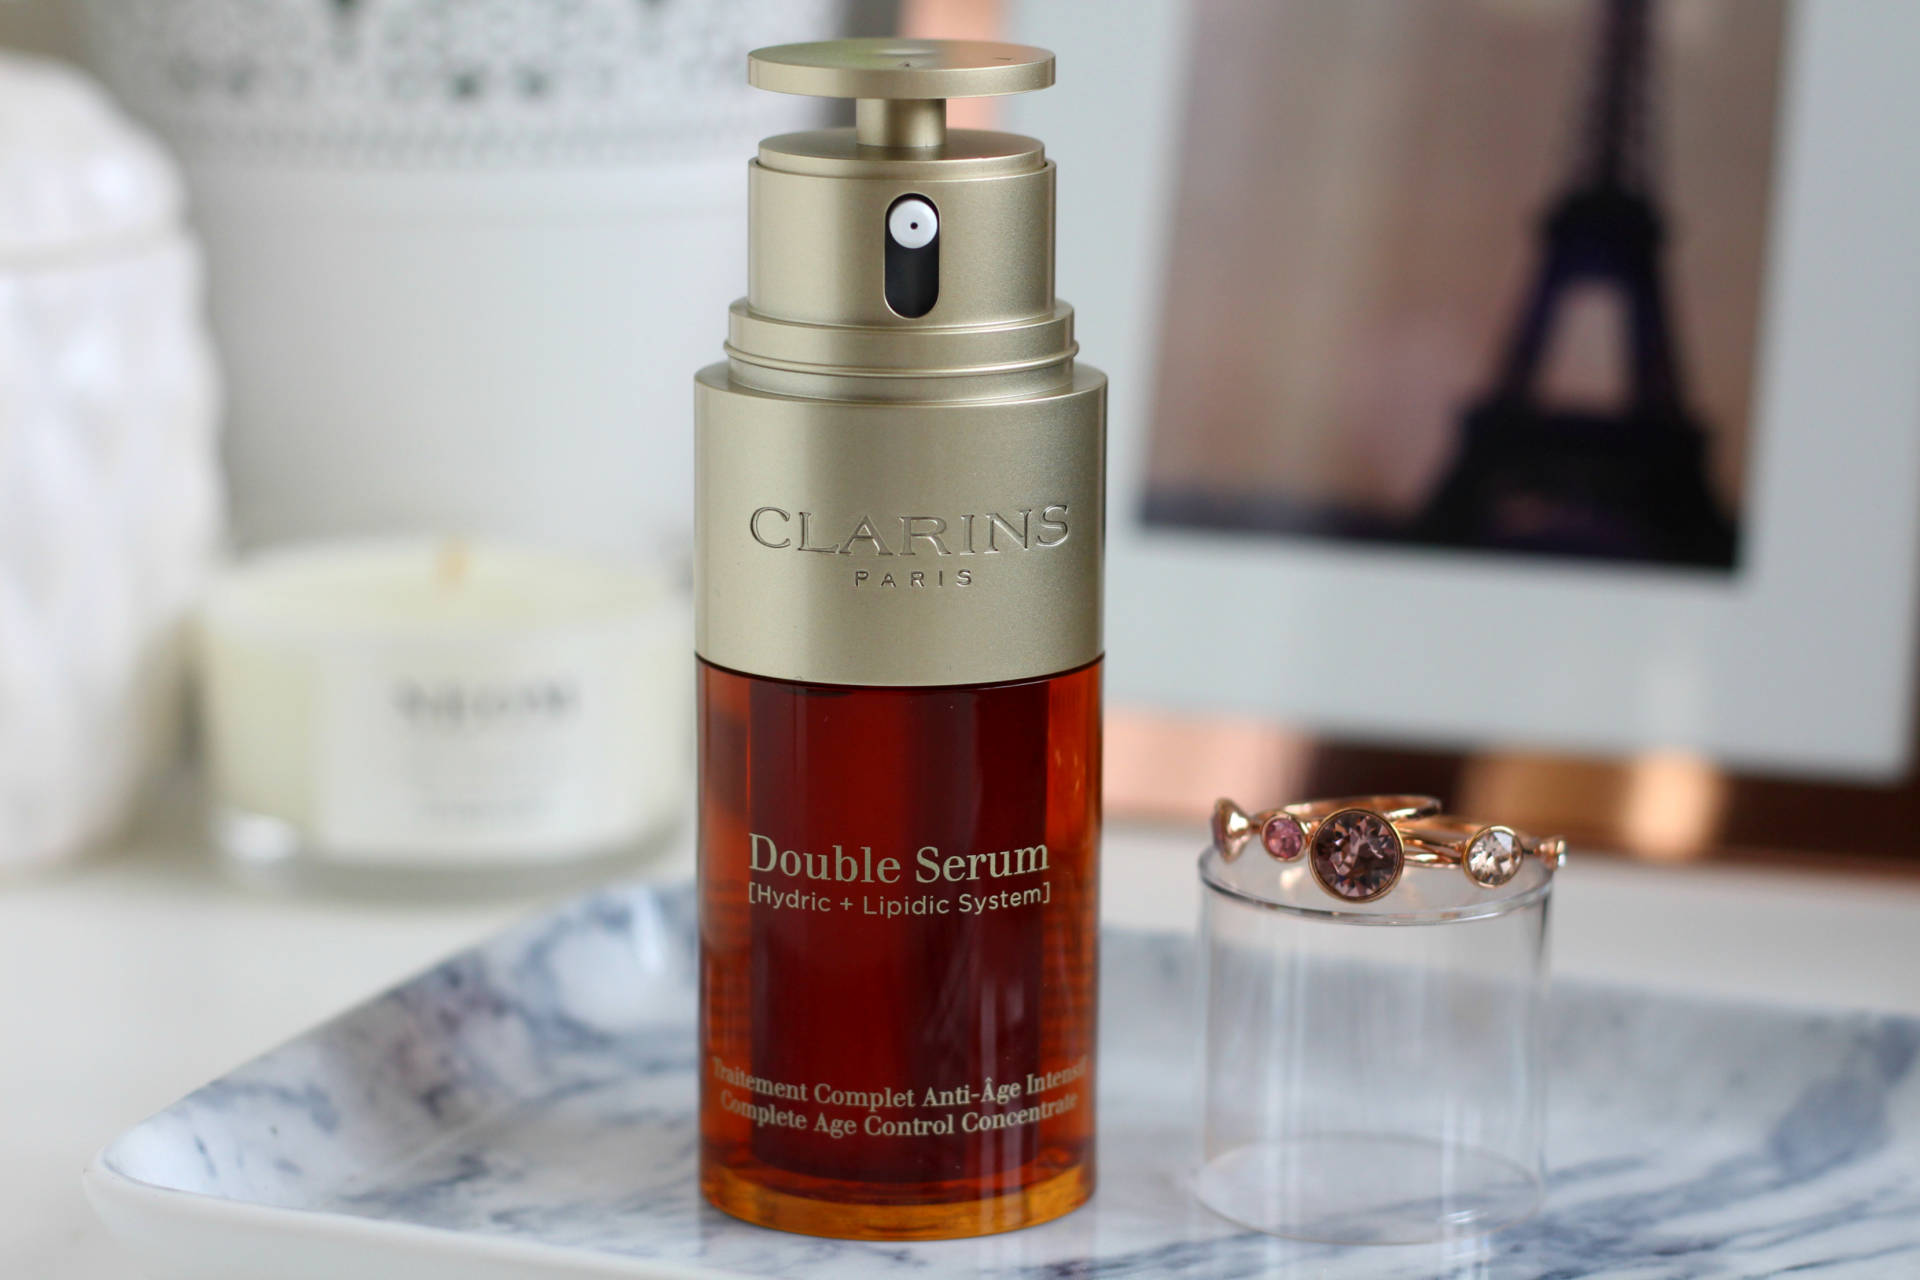 The new and improved Clarins Double Serum